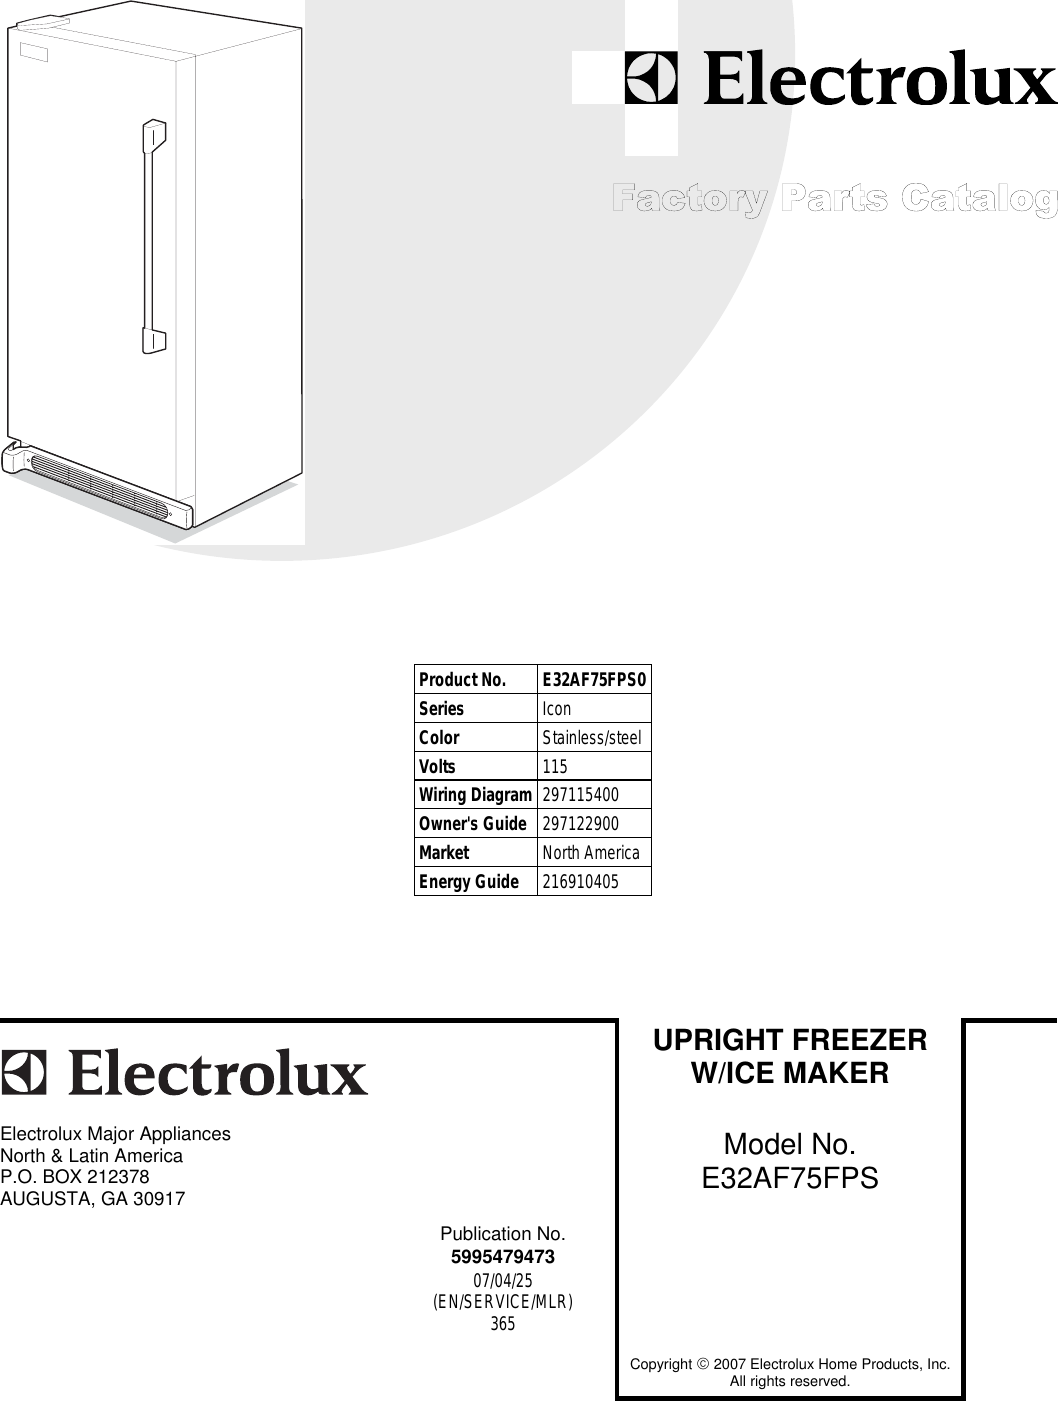 Electrolux Icon E32af75fps0 Users Manual Factory Parts Catalog For Refrigerator Wiring Diagram E32af75fps And E32ar75fps